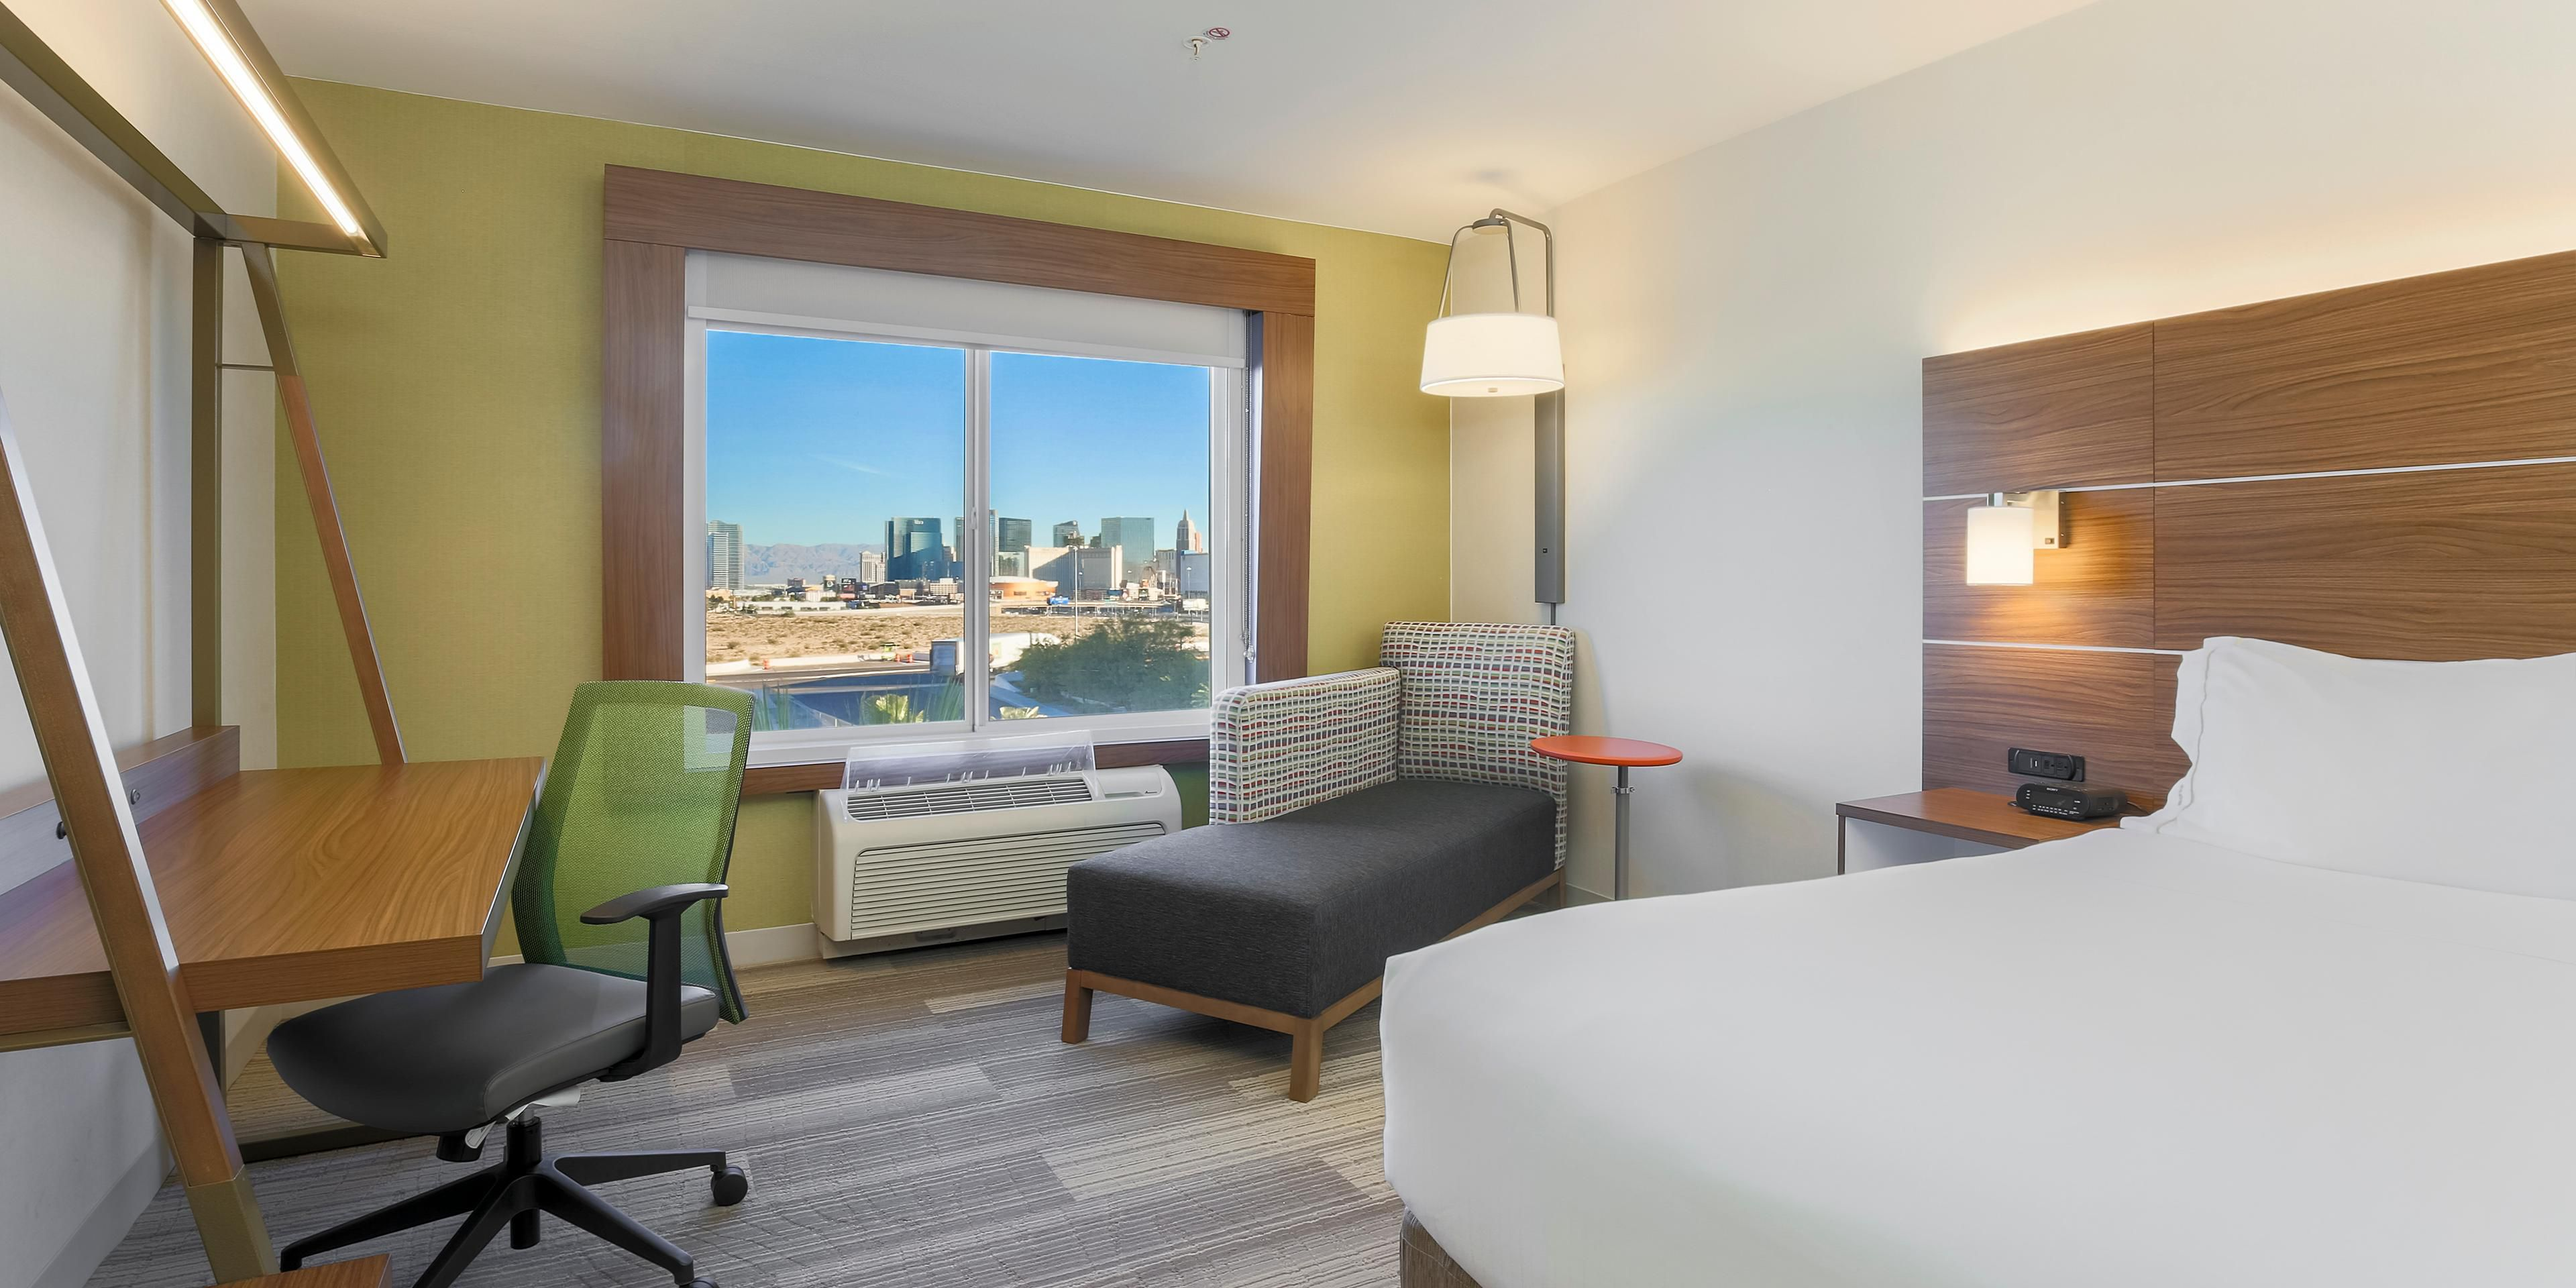 rooms westgate sale for spacious vegas sofa furniture couch signature offers set gallery in room las resort and nv hotel accommodations